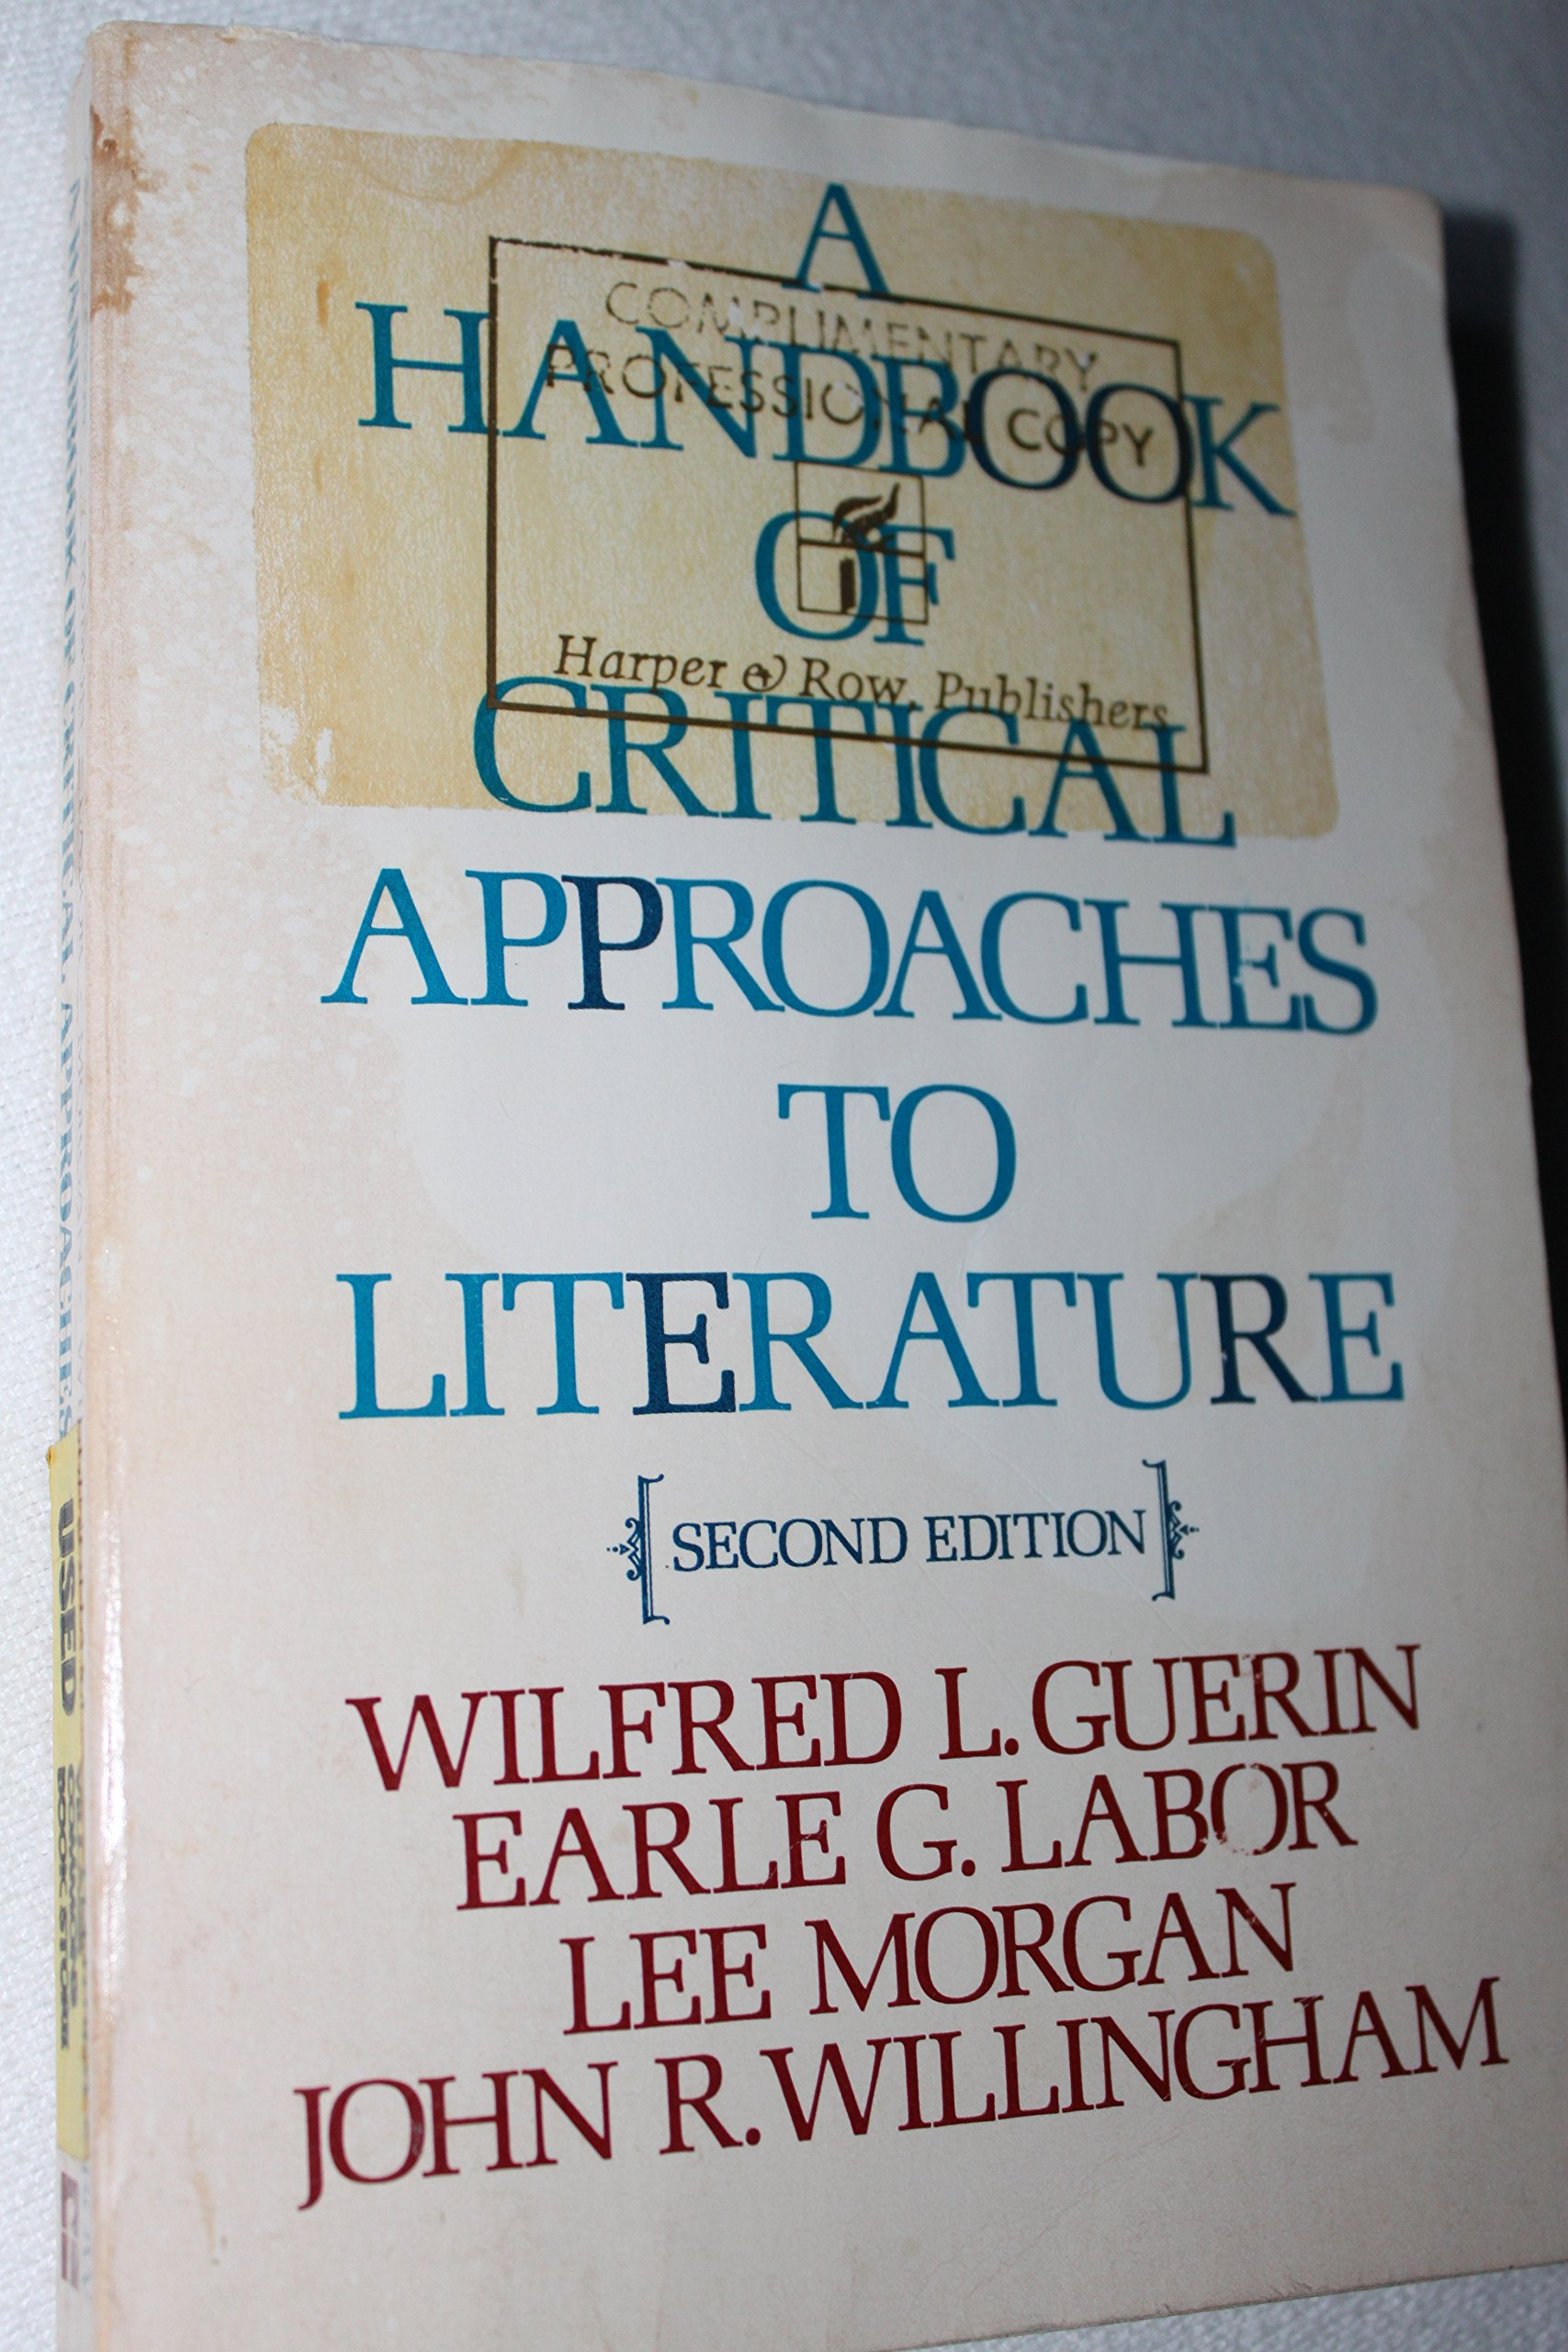 Literature craft and voice 2nd edition - A Handbook Of Critical Approaches To Literature Wilfred L Guerinb 9780060425548 Amazon Com Books